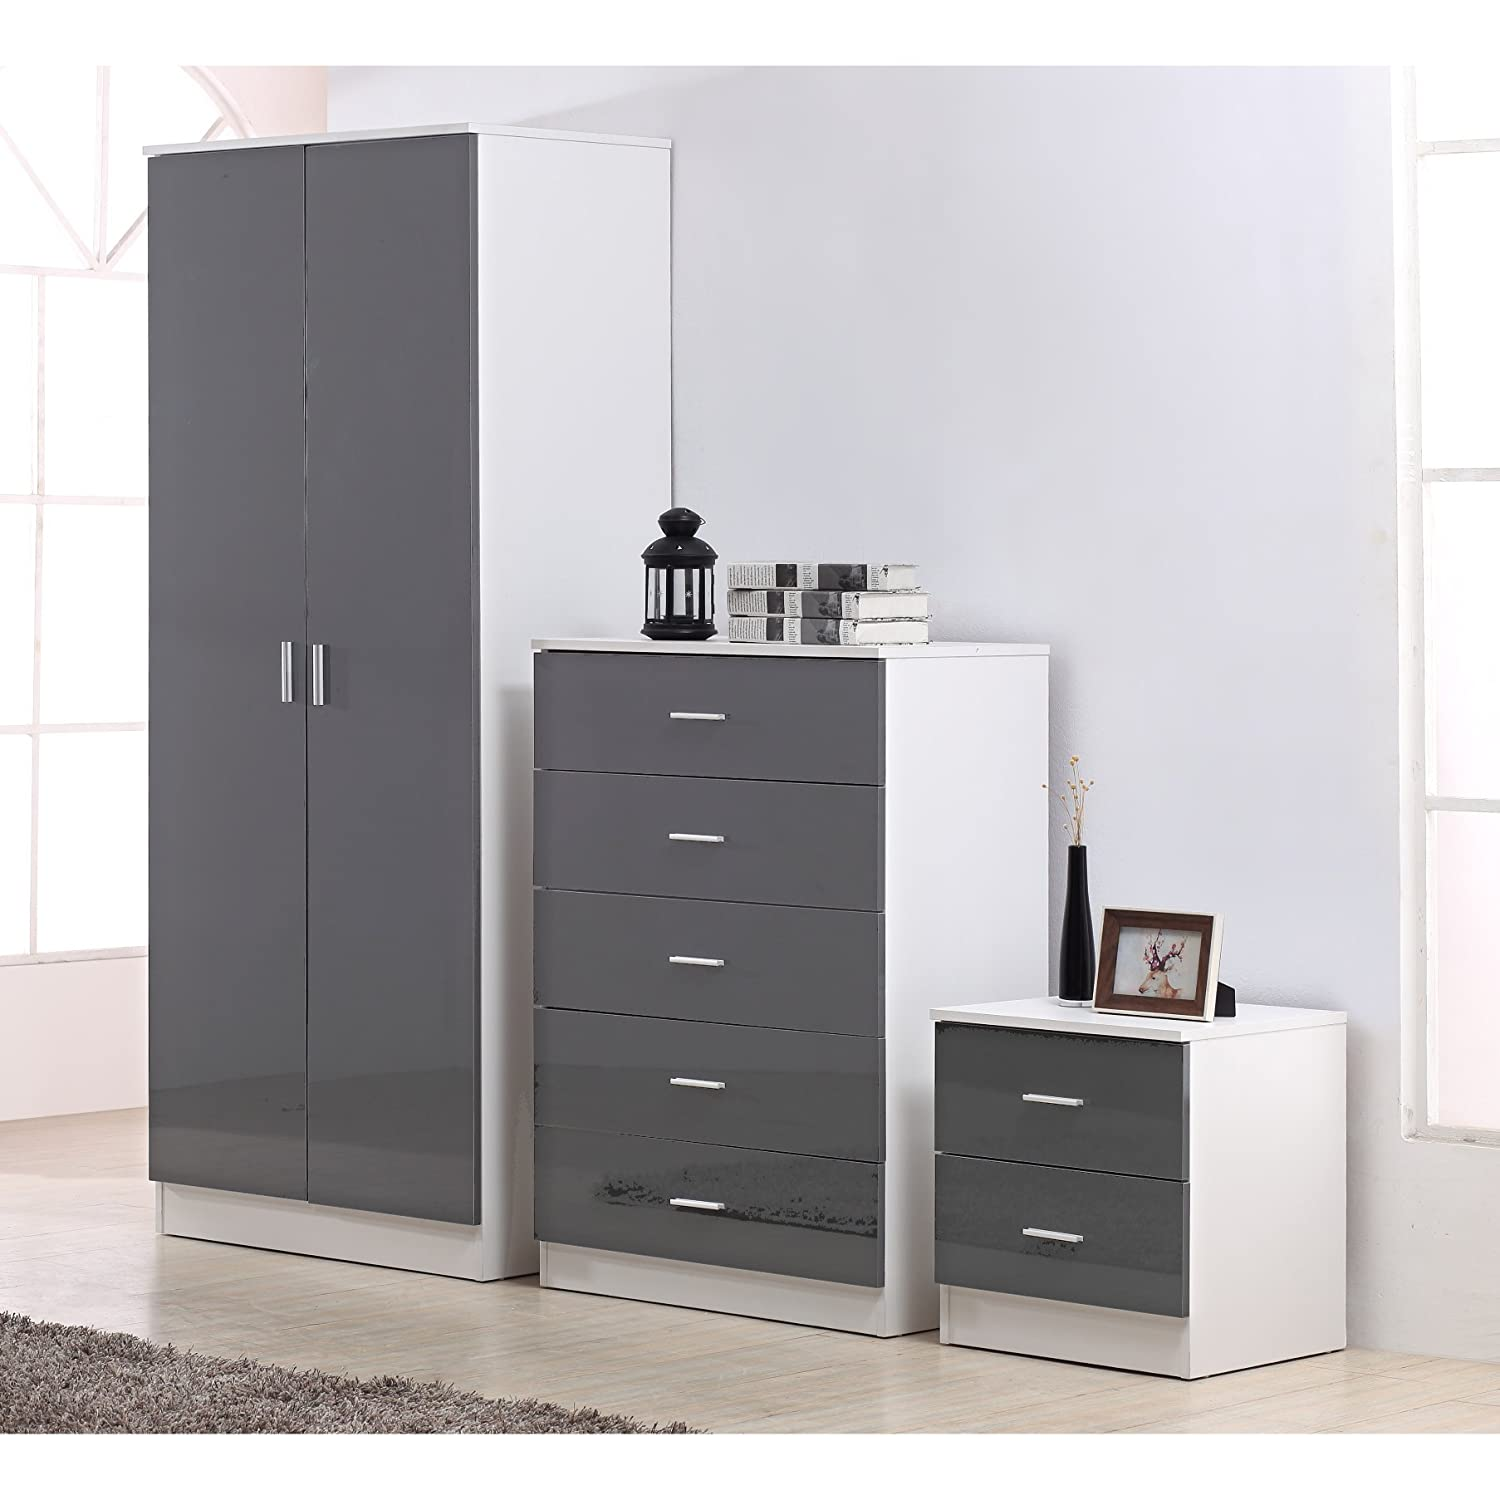 Reflect 3 Piece Bedroom Furniture Set - 2 Door Plain Wardrobe + 5 Drawer Chest Drawers + 2 Drawer Bedside - High Gloss Grey Drawer Fronts & Matt White Carcass DFurnitureStore